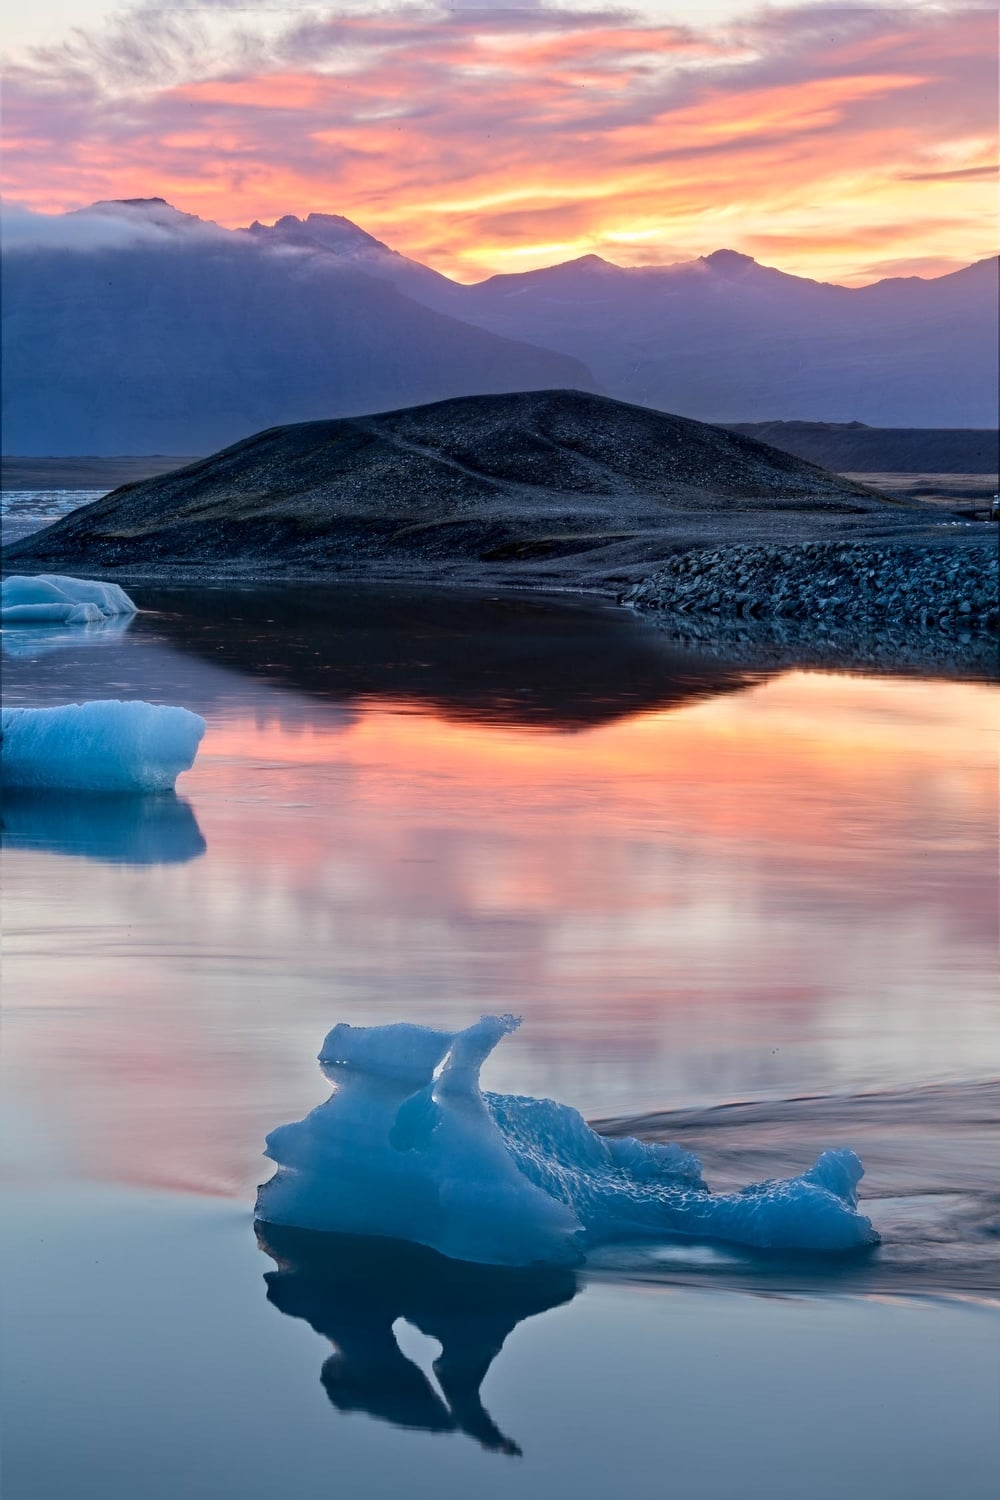 The serenity was palpable as the sun set on Jokulsarlon Glacier Lagoon in Iceland. The contrasting warm of the sunset and the cool blue of the iceberg and lagoon provided a striking contrast.